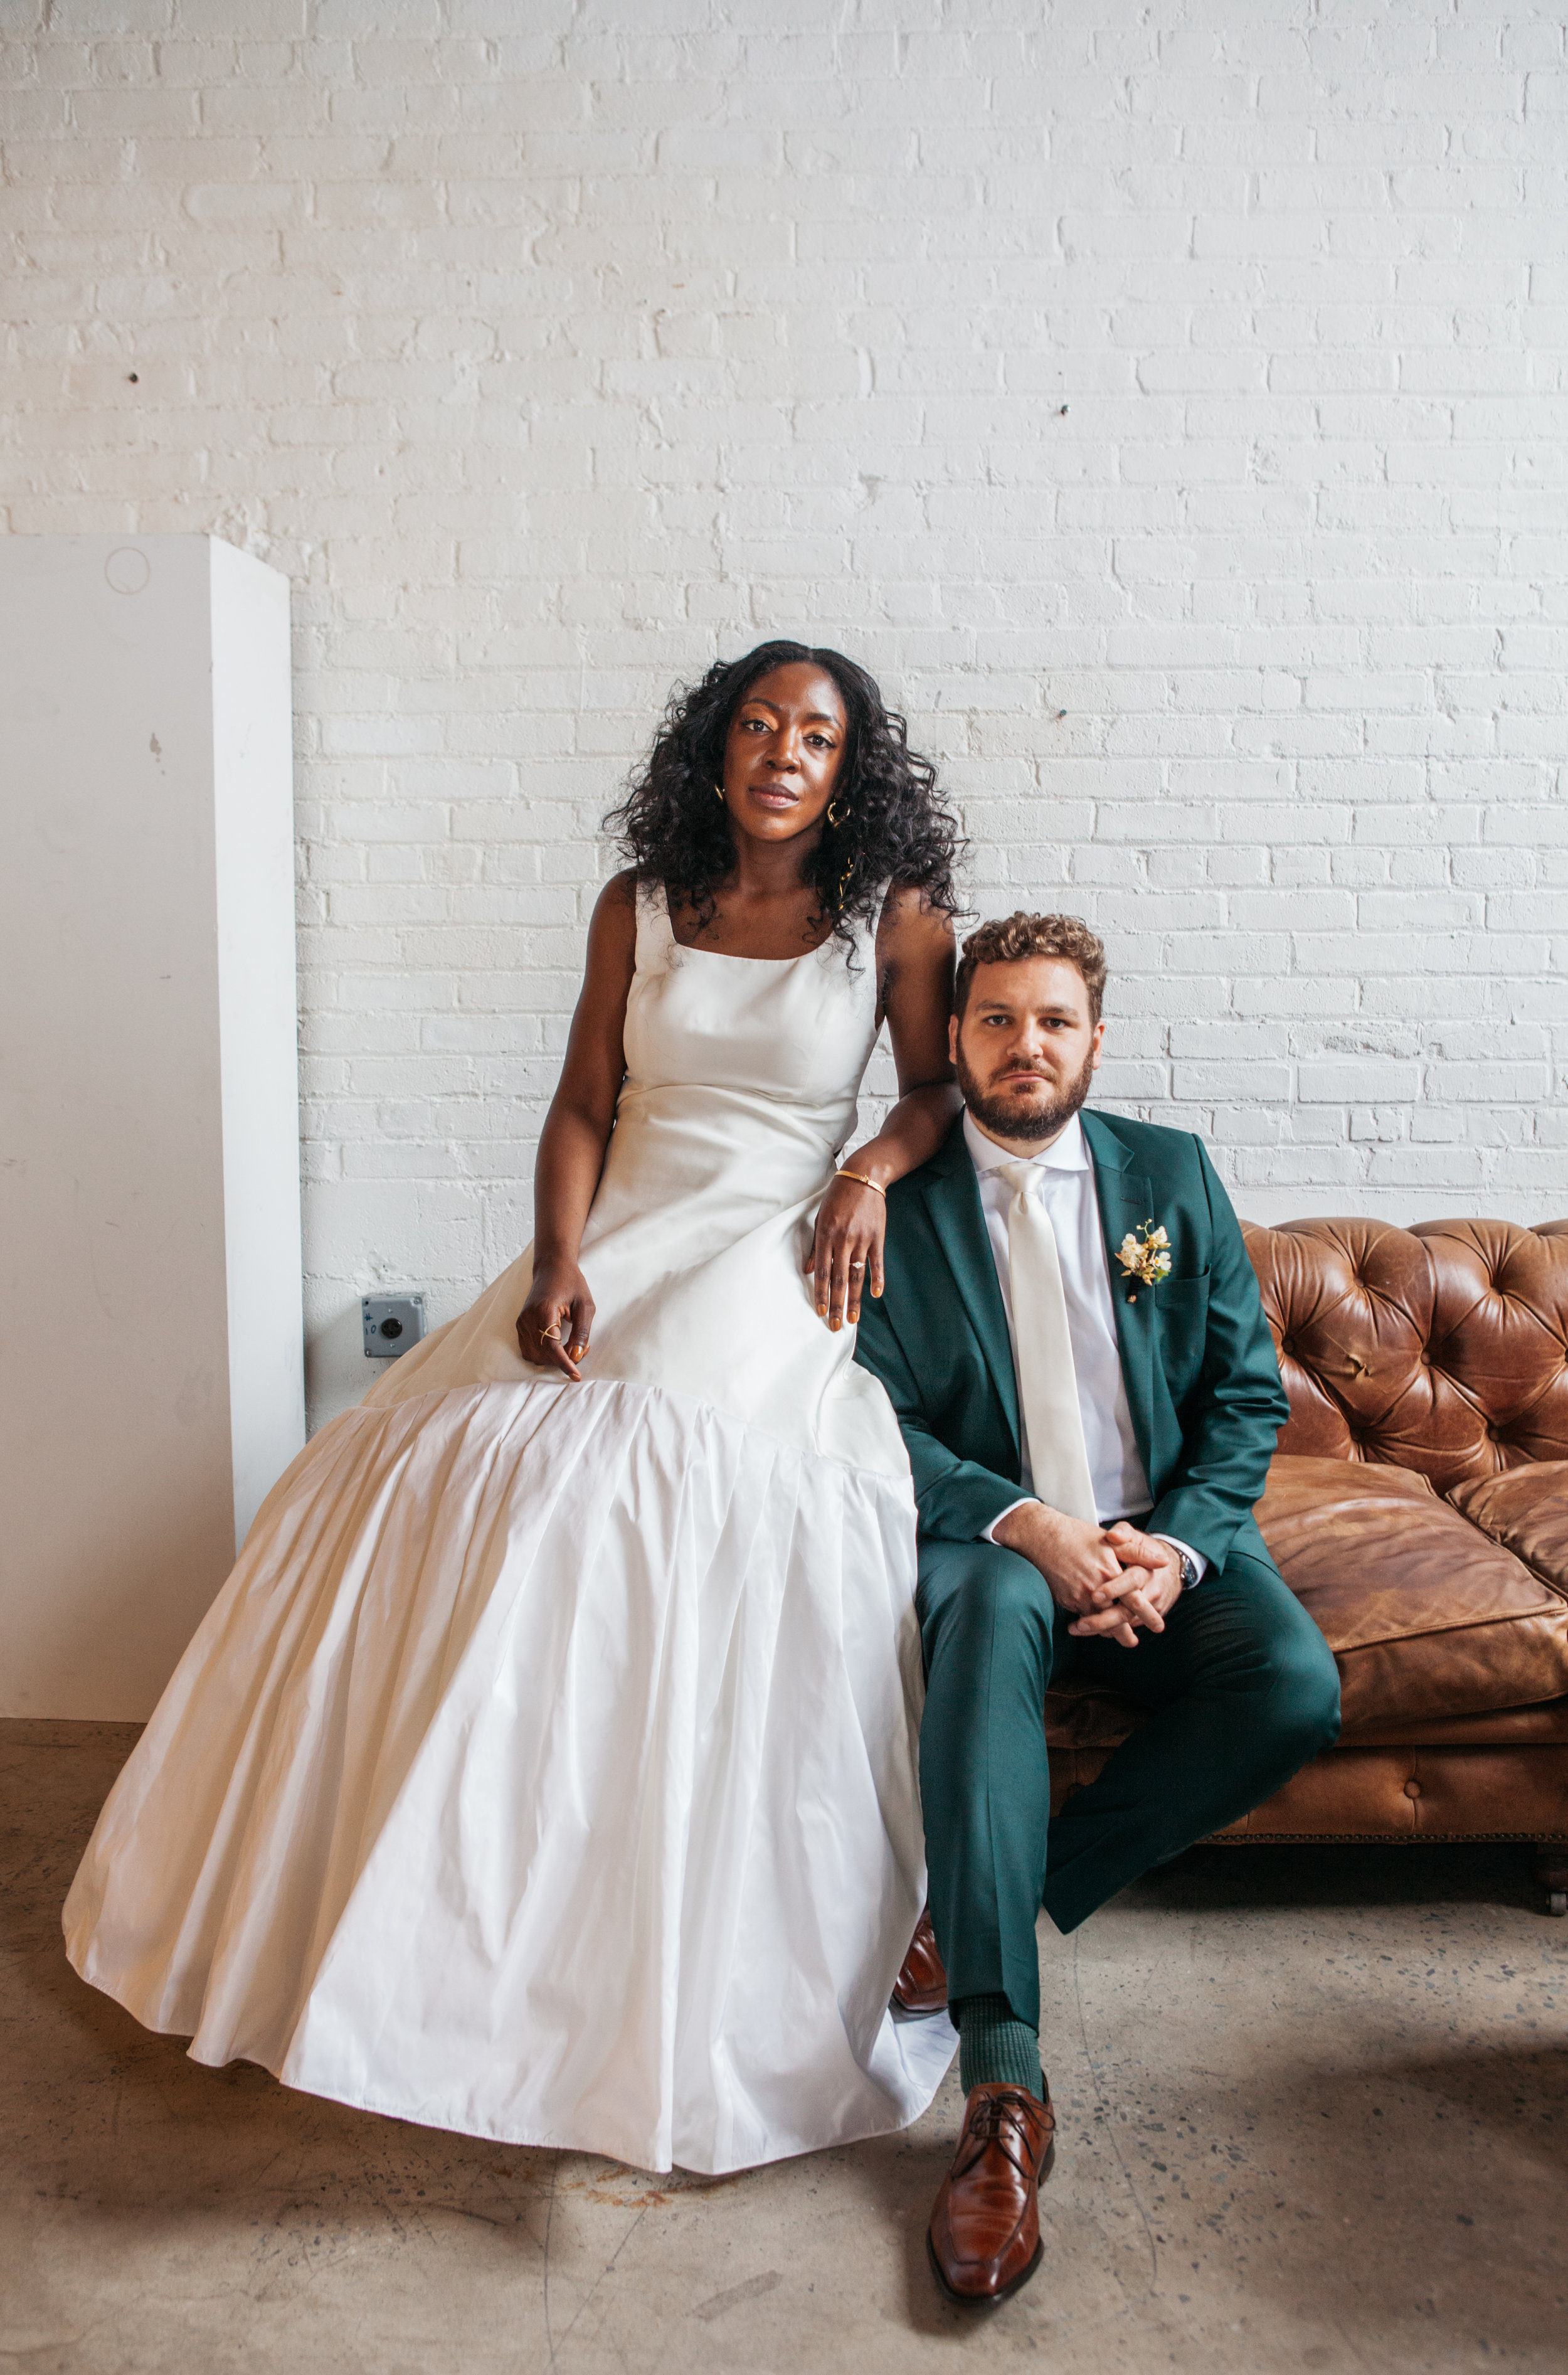 Chanelle + Ben - Short blog post with all of the vendor information for this notoriously beautiful Brooklyn wedding!Read More